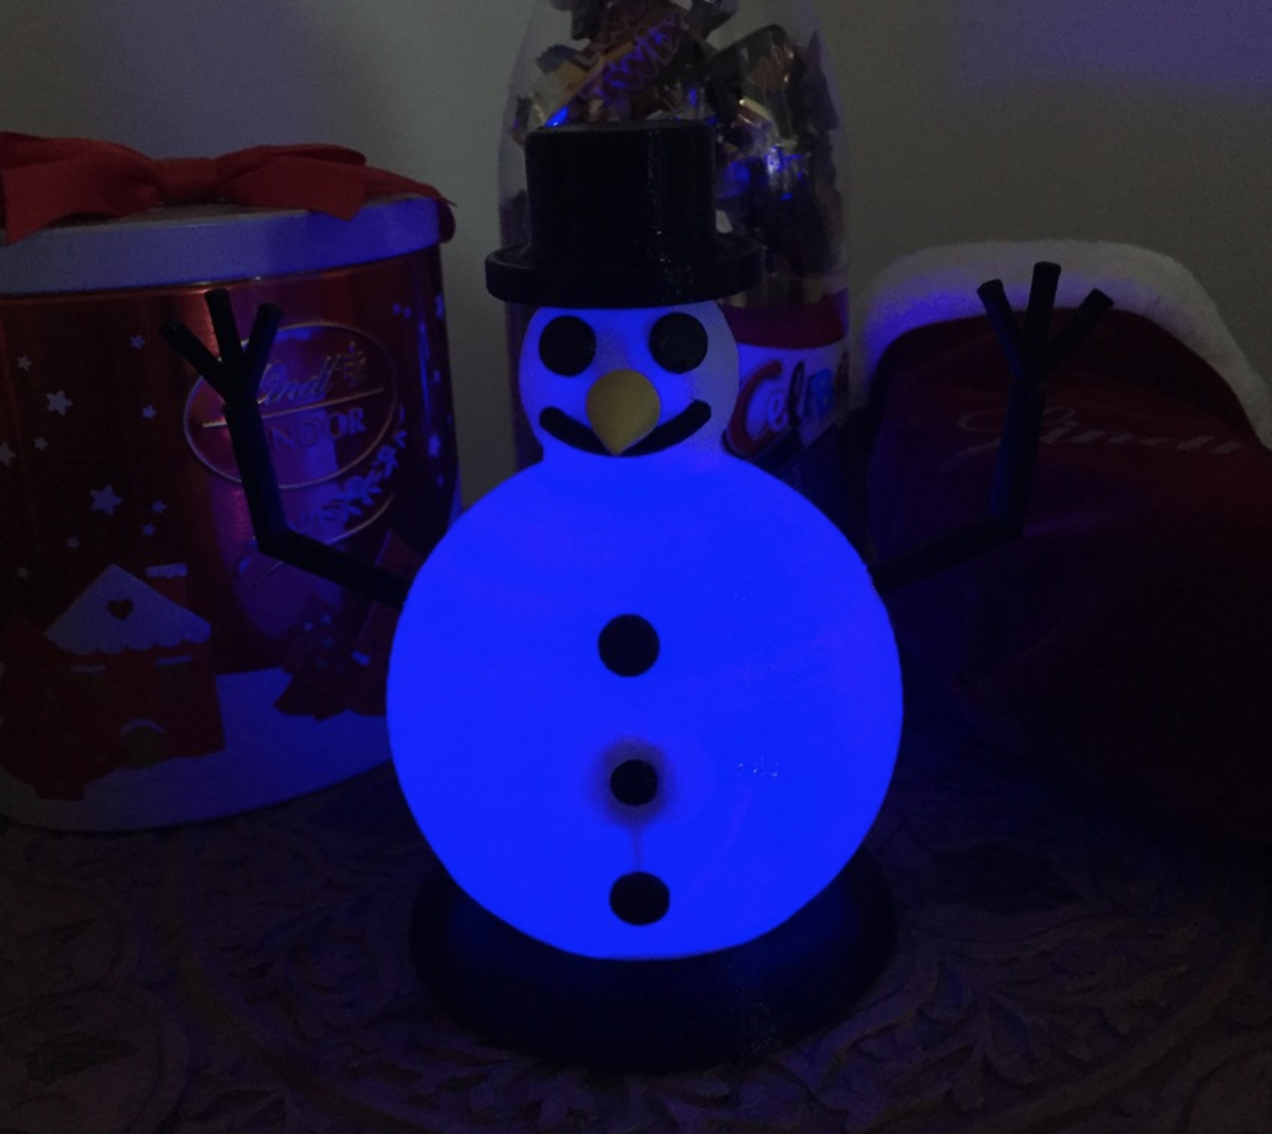 Capture d'écran 2018-01-02 à 15.15.49.png Download free STL file Glow In The Dark Snowman • Template to 3D print, MuSSy